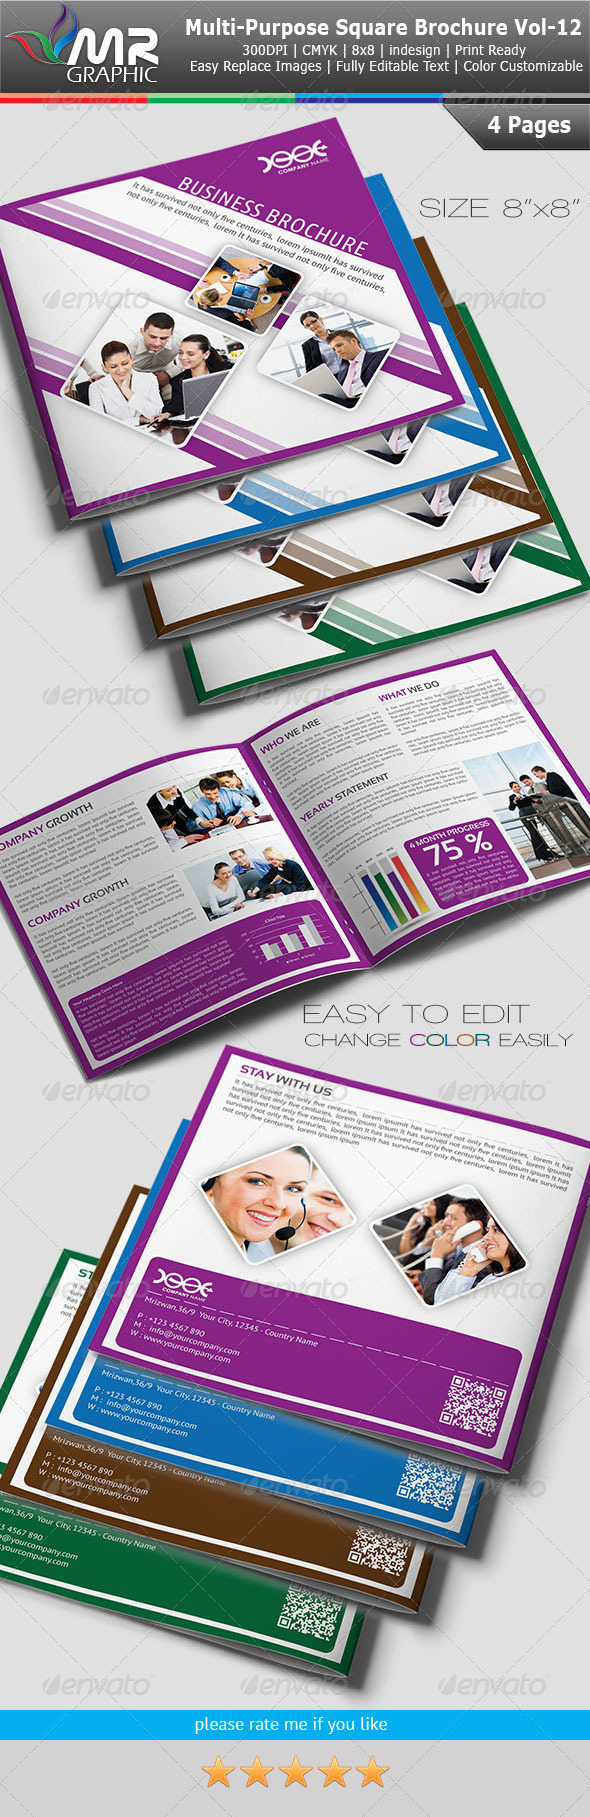 Multipurpose Square Business Brochure Vol-12